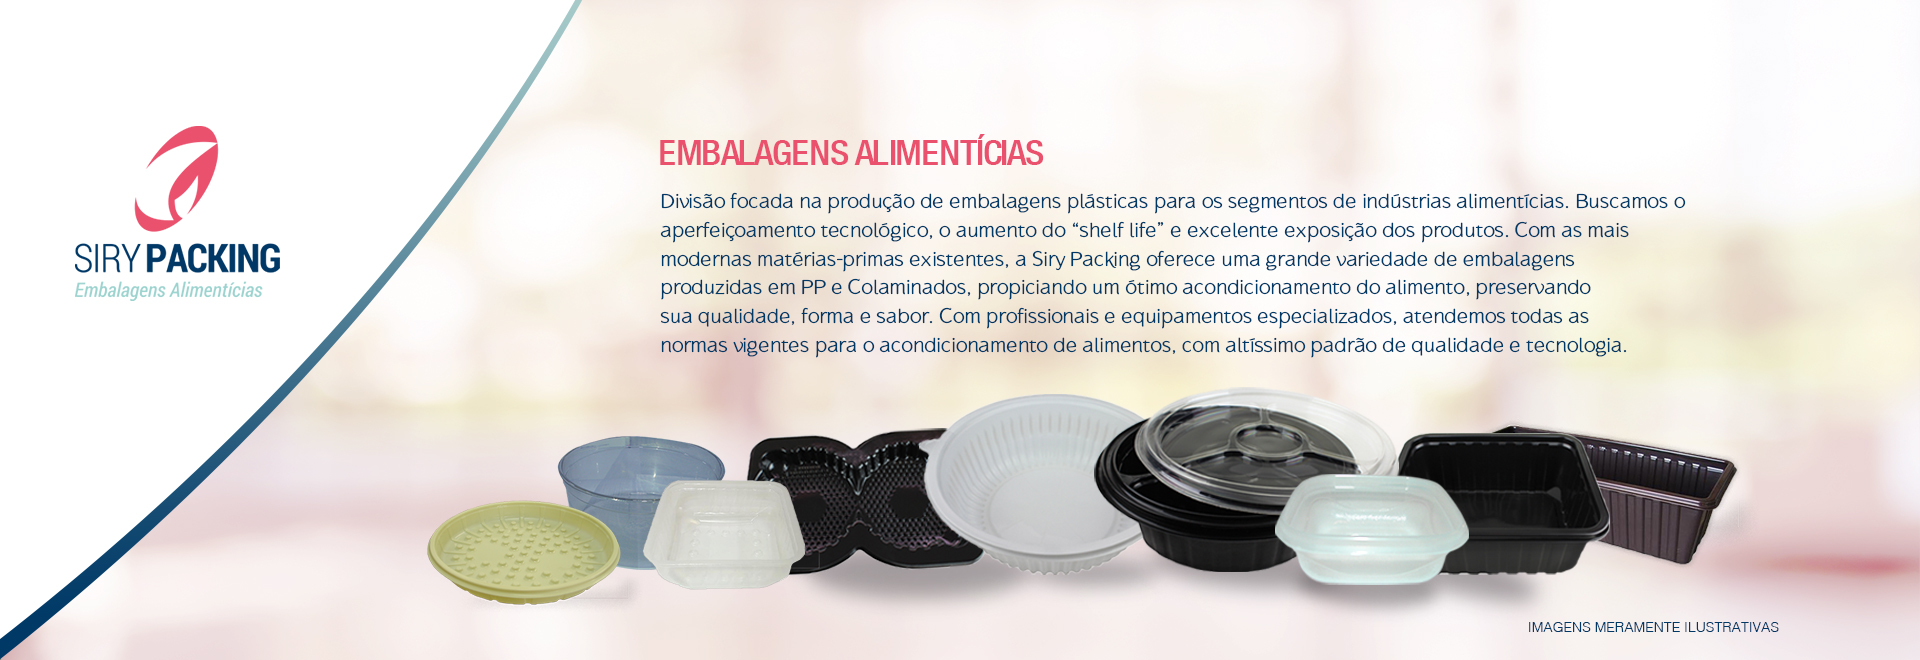 Siry Packing Embalagens Alimentícias